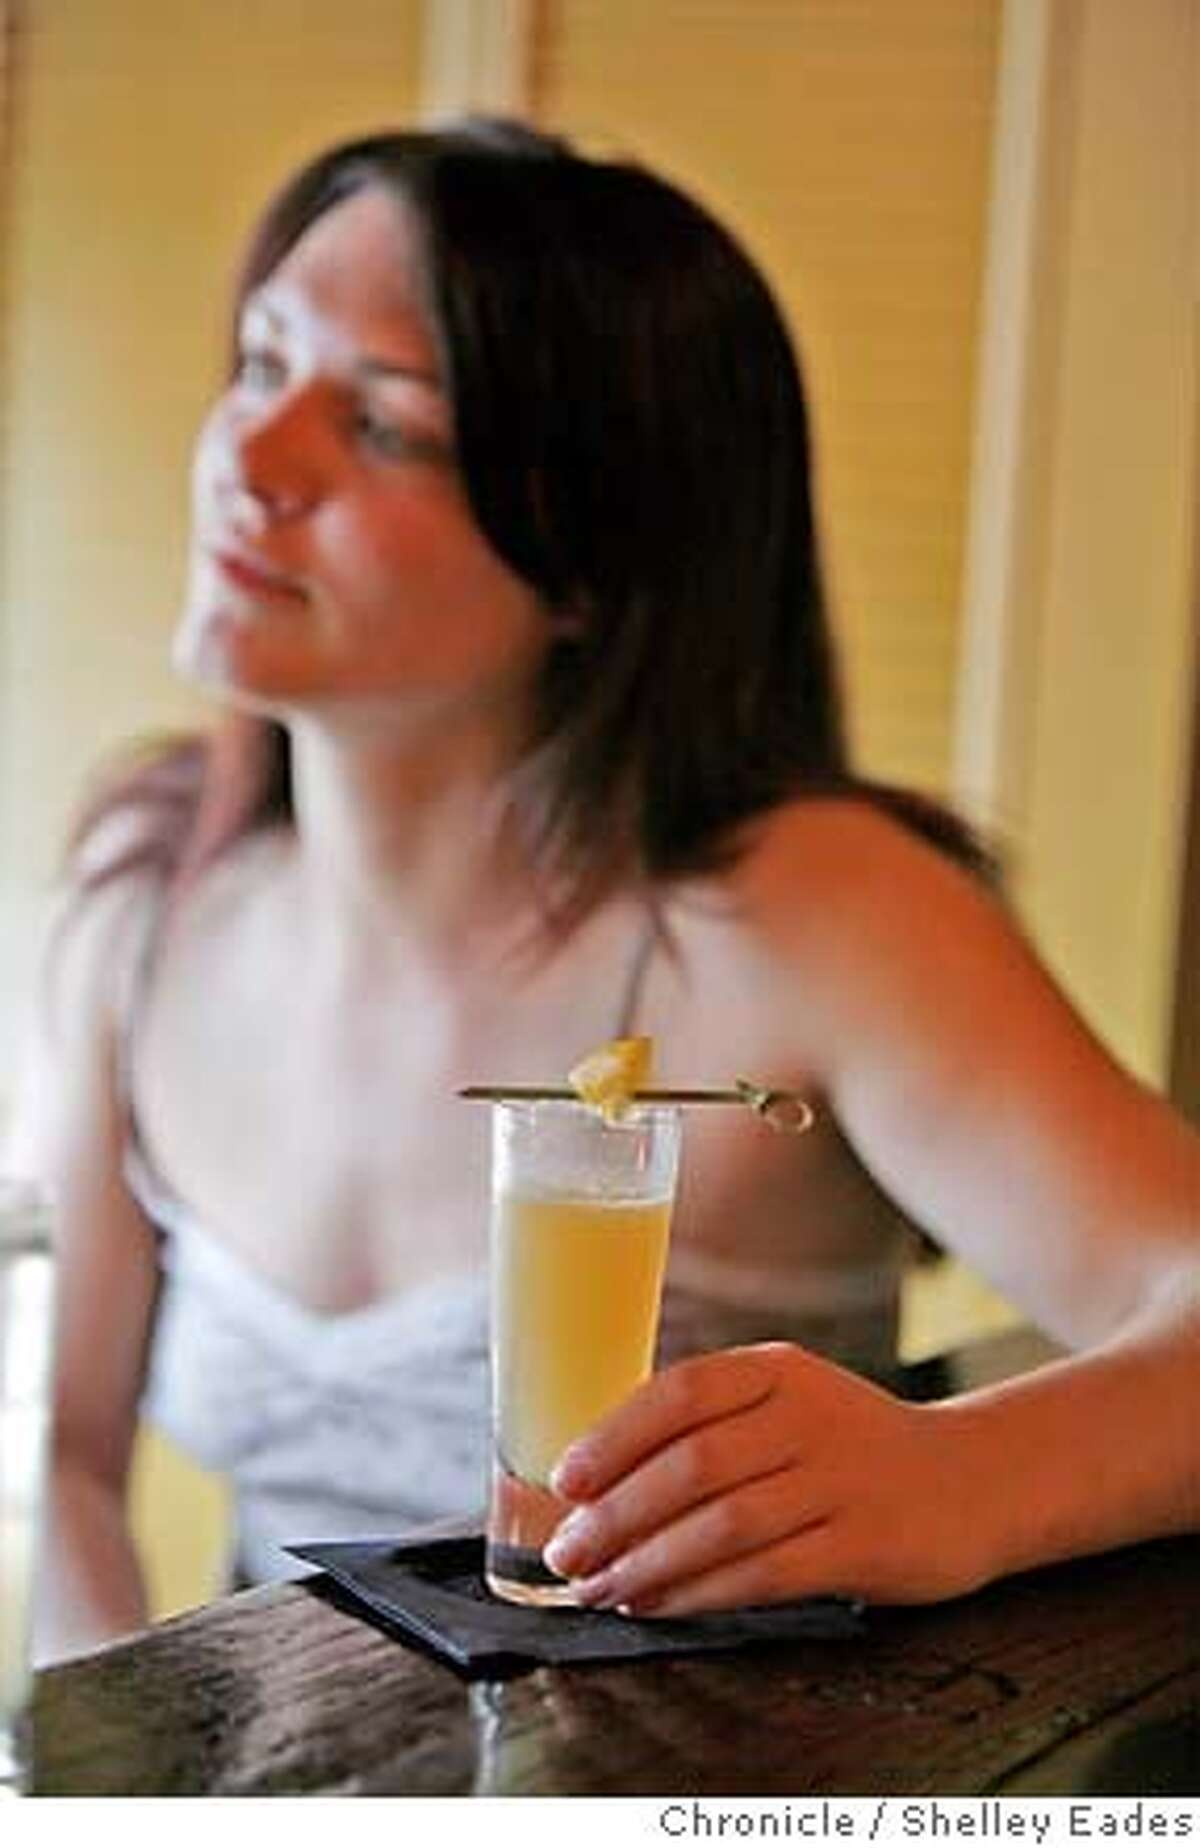 Jill Smagula enjoys a Mellow Yellow cocktail prepared by Hyatt at the Alembic. Chronicle photo by Shelley Eades